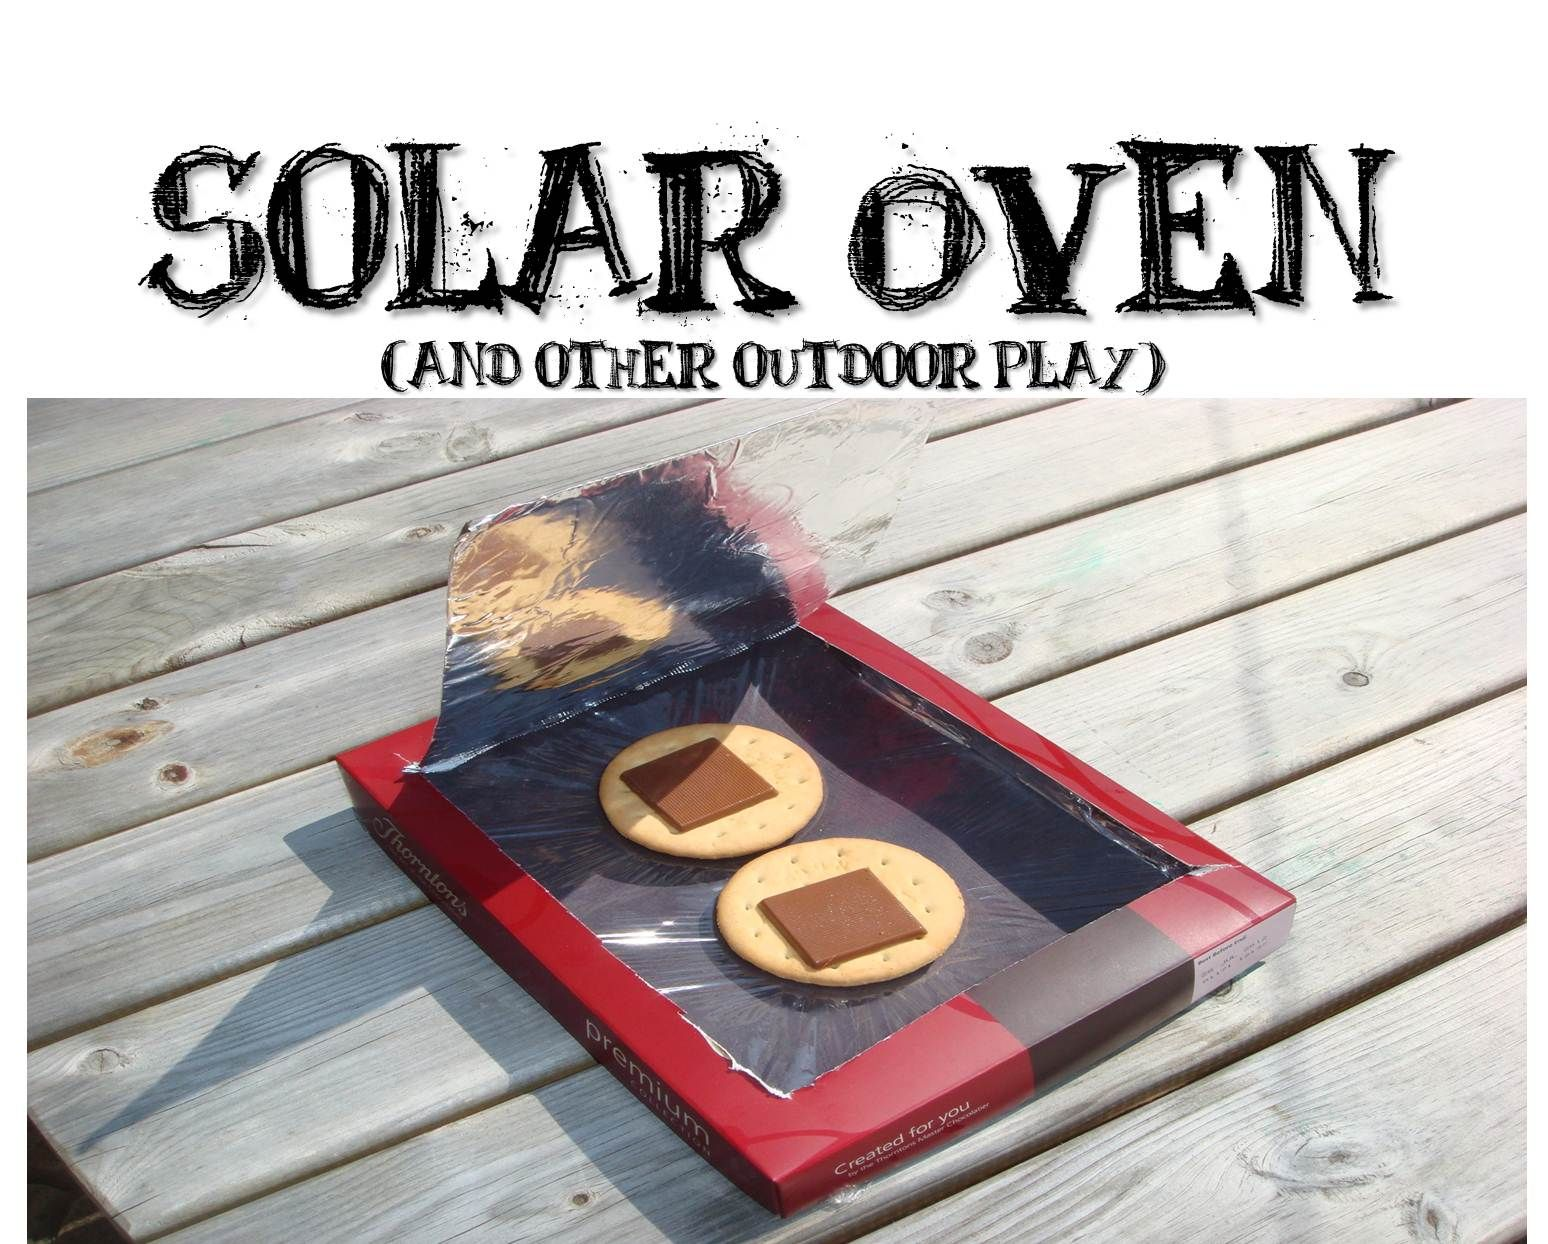 Making Boys Men: Solar Oven (Our Week Outdoors Part I) | PreSchool ...